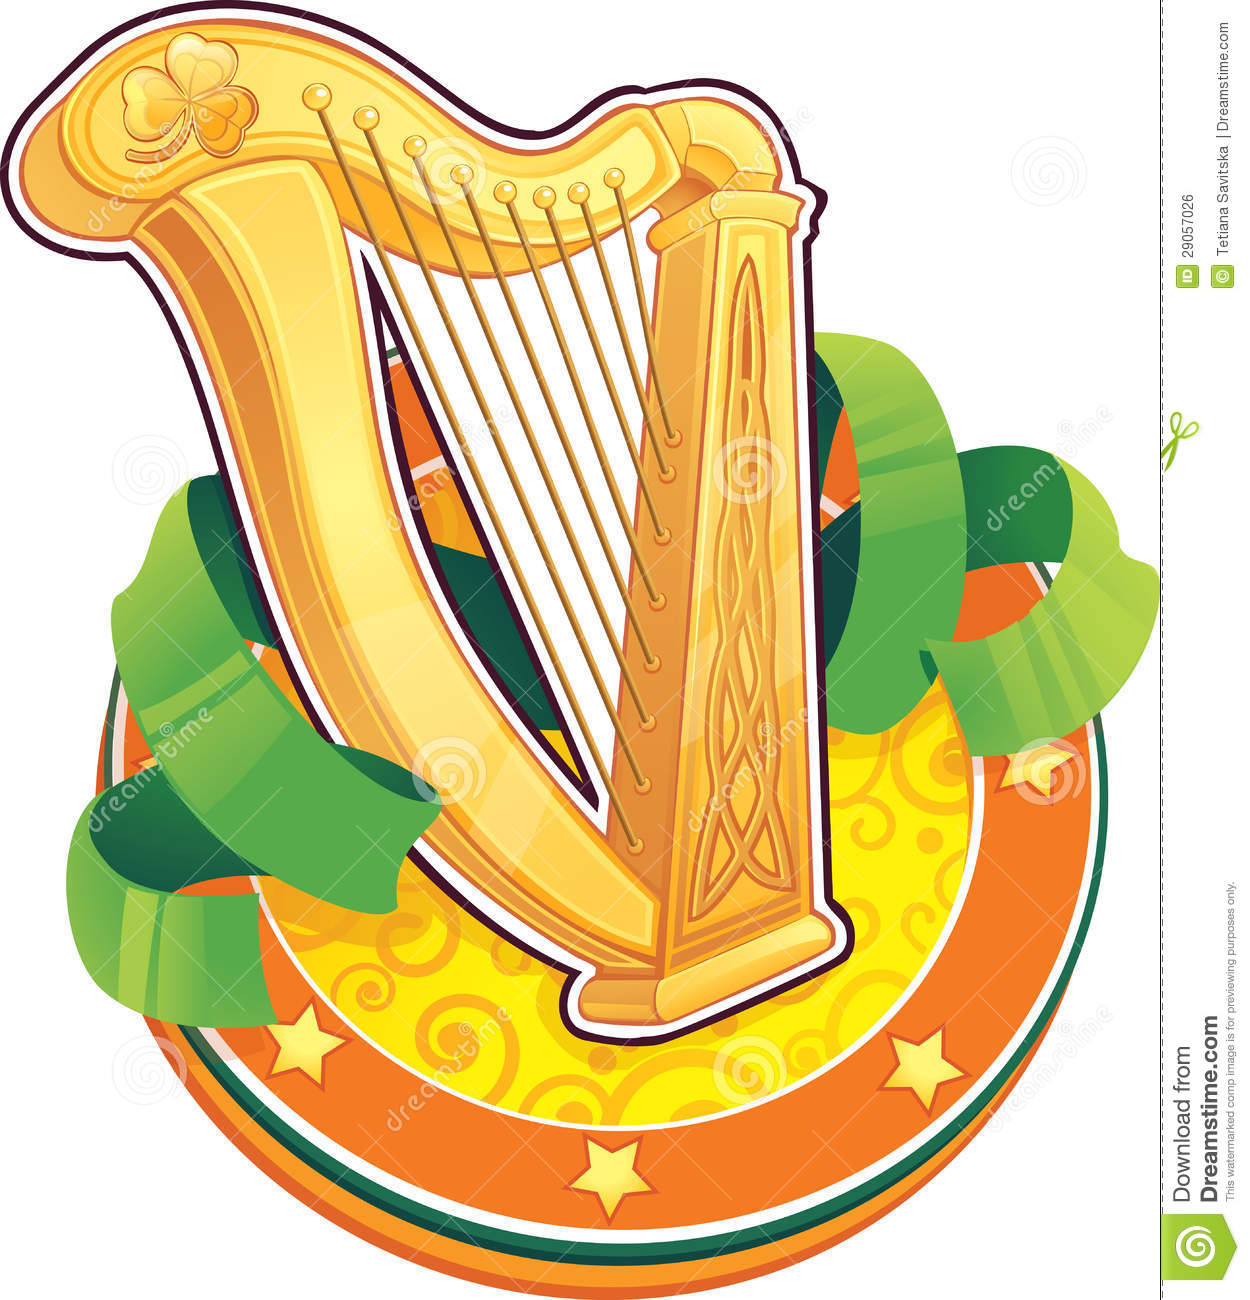 Illustration for St.Patricks Day. Created in Adobe Illustrator. Image ...